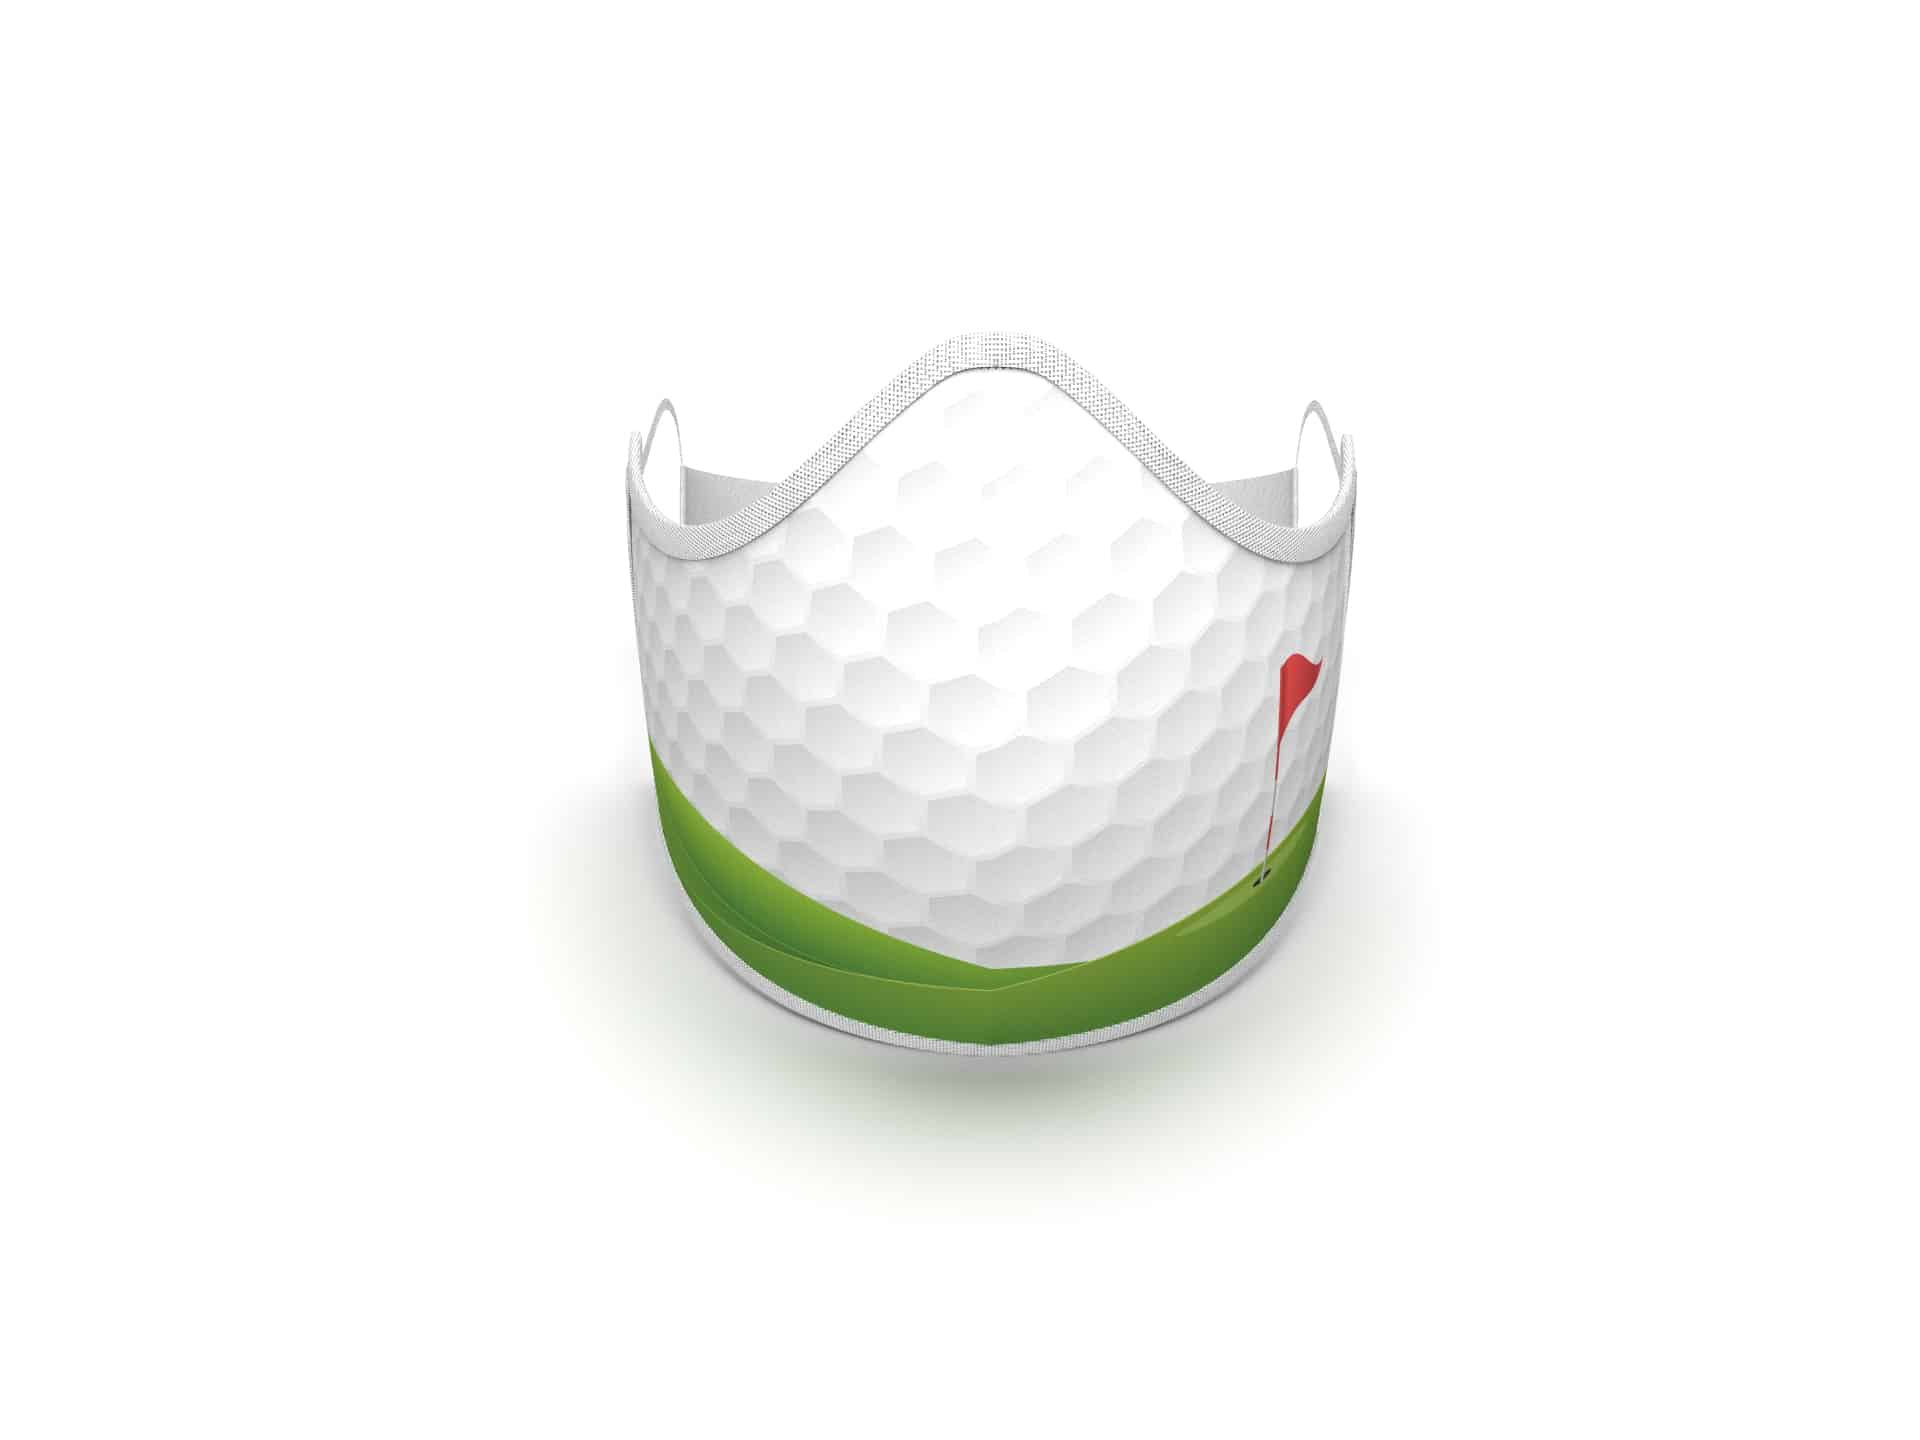 Our Mulligan Fashion Graphic Masks